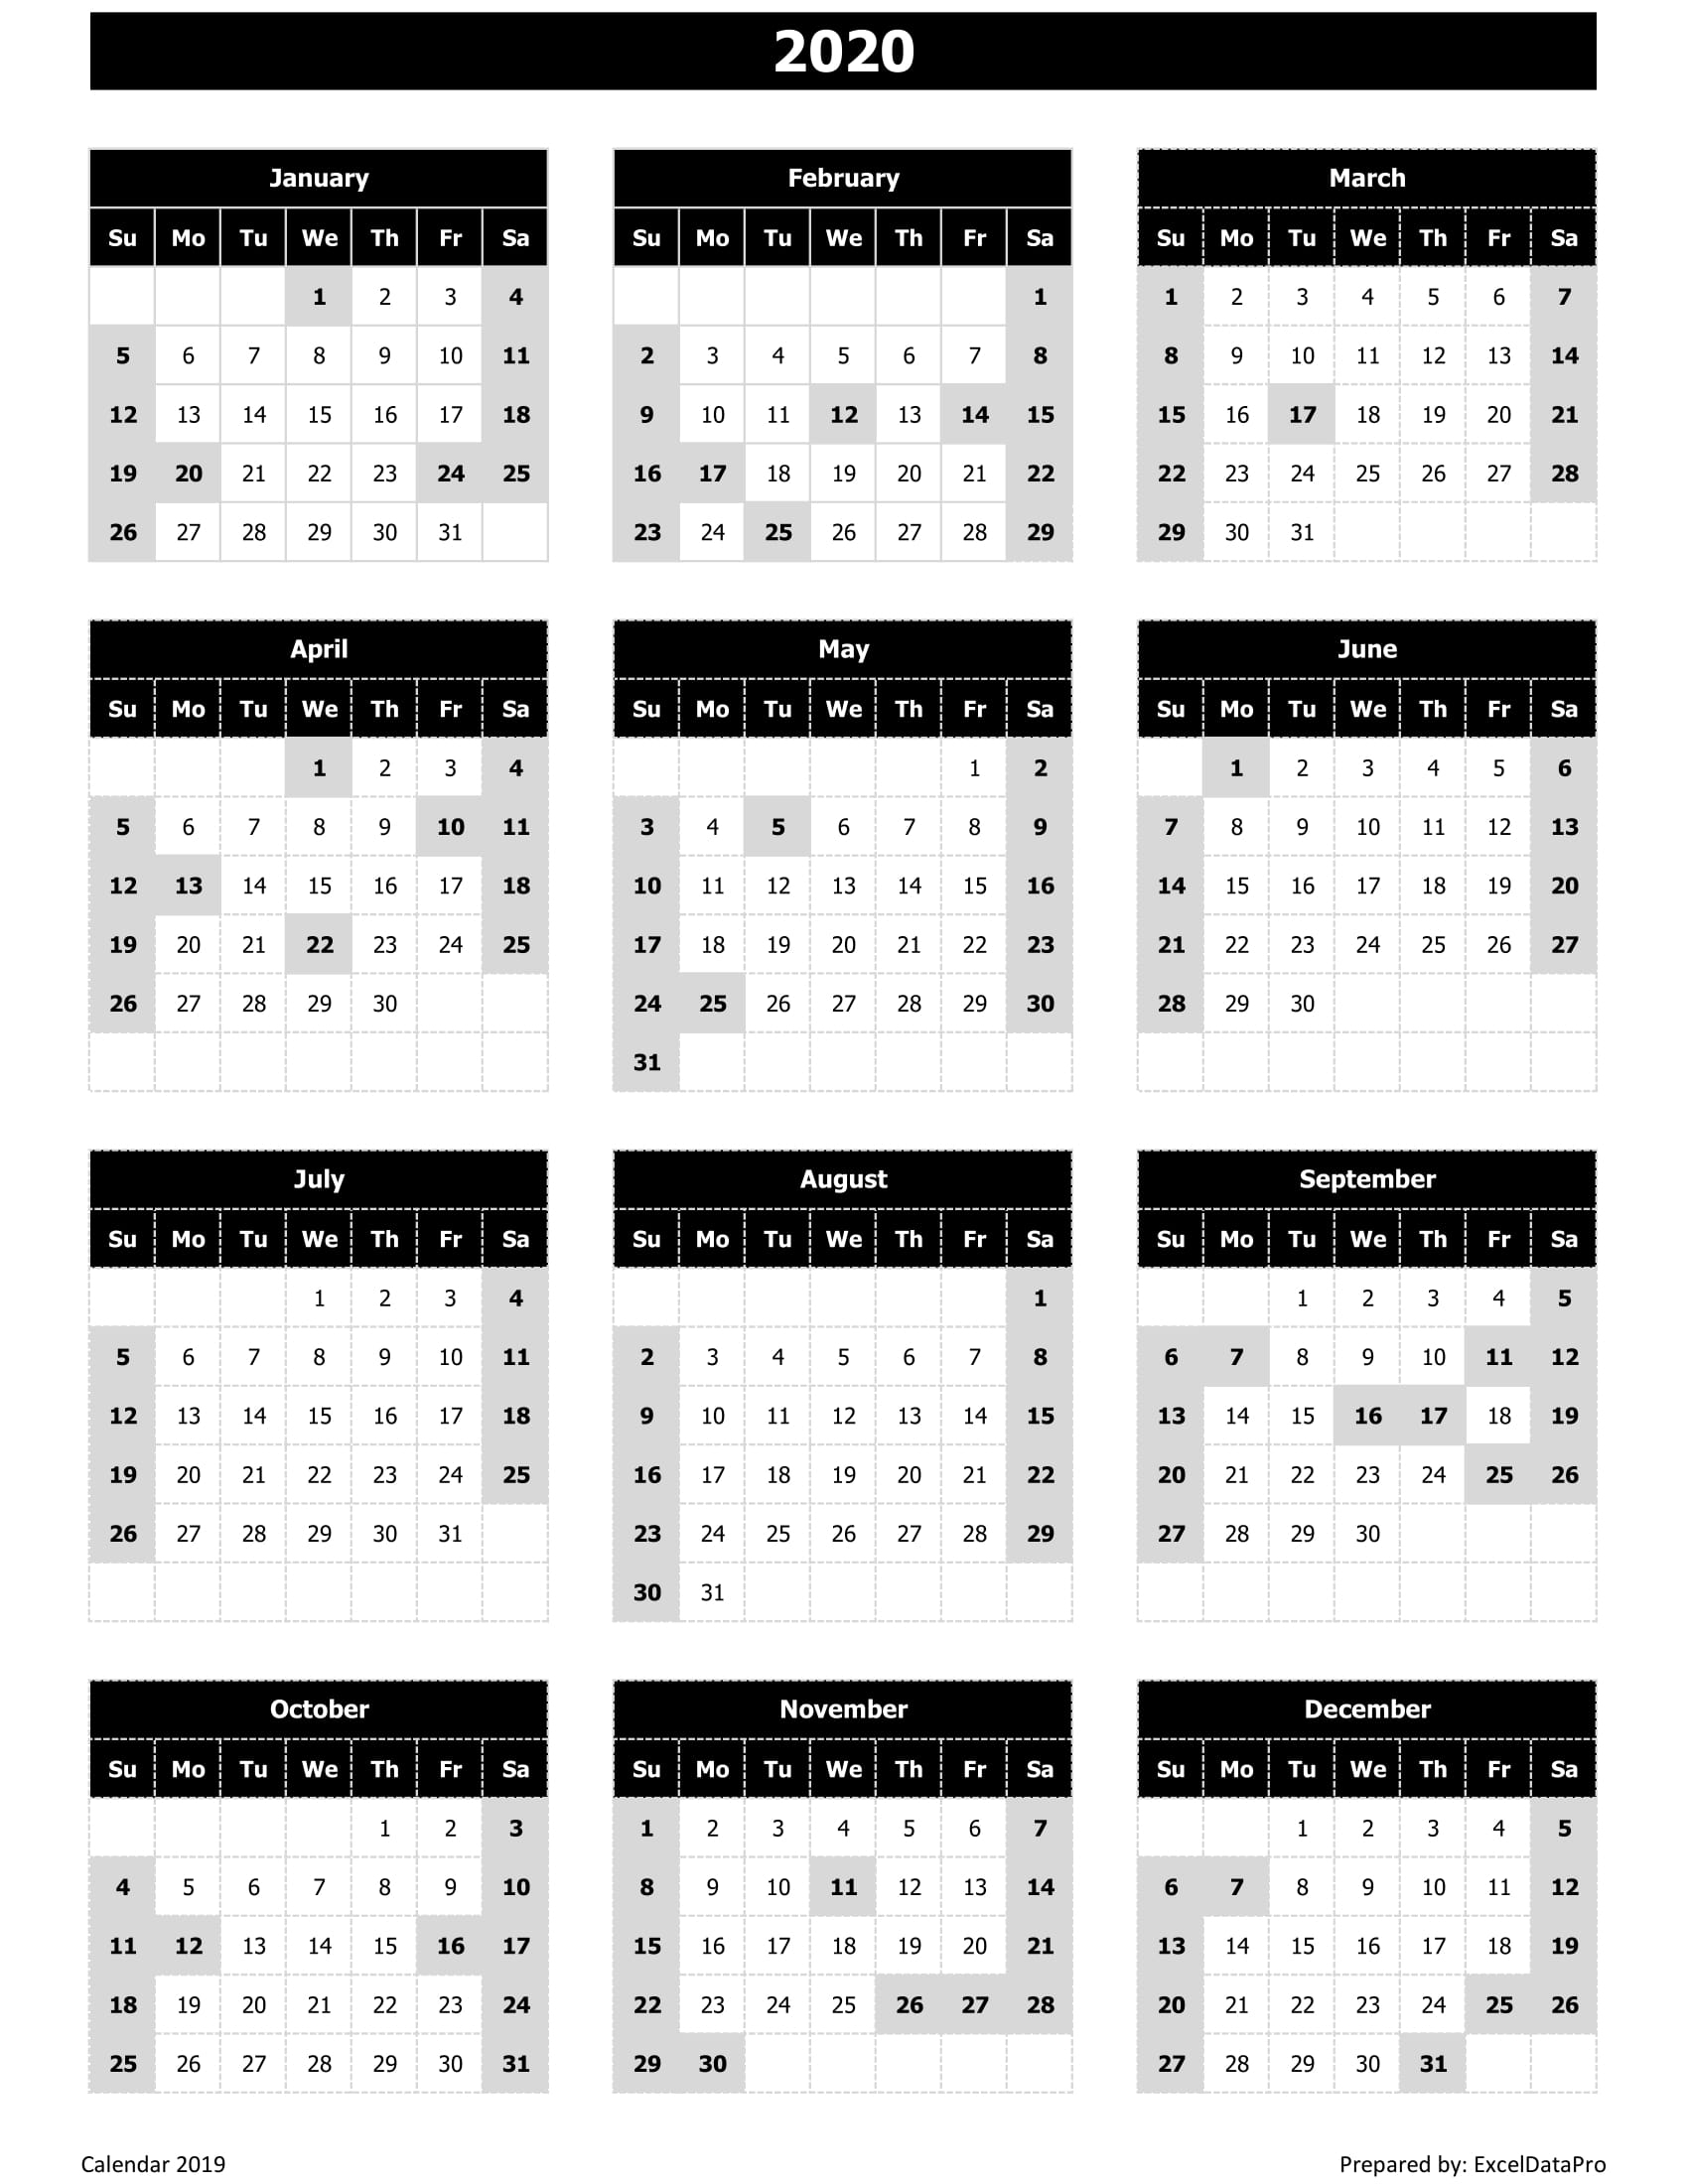 Download 2020 Yearly Calendar (Sun Start) Excel Template for La Fitness Payroll Calendar 2020